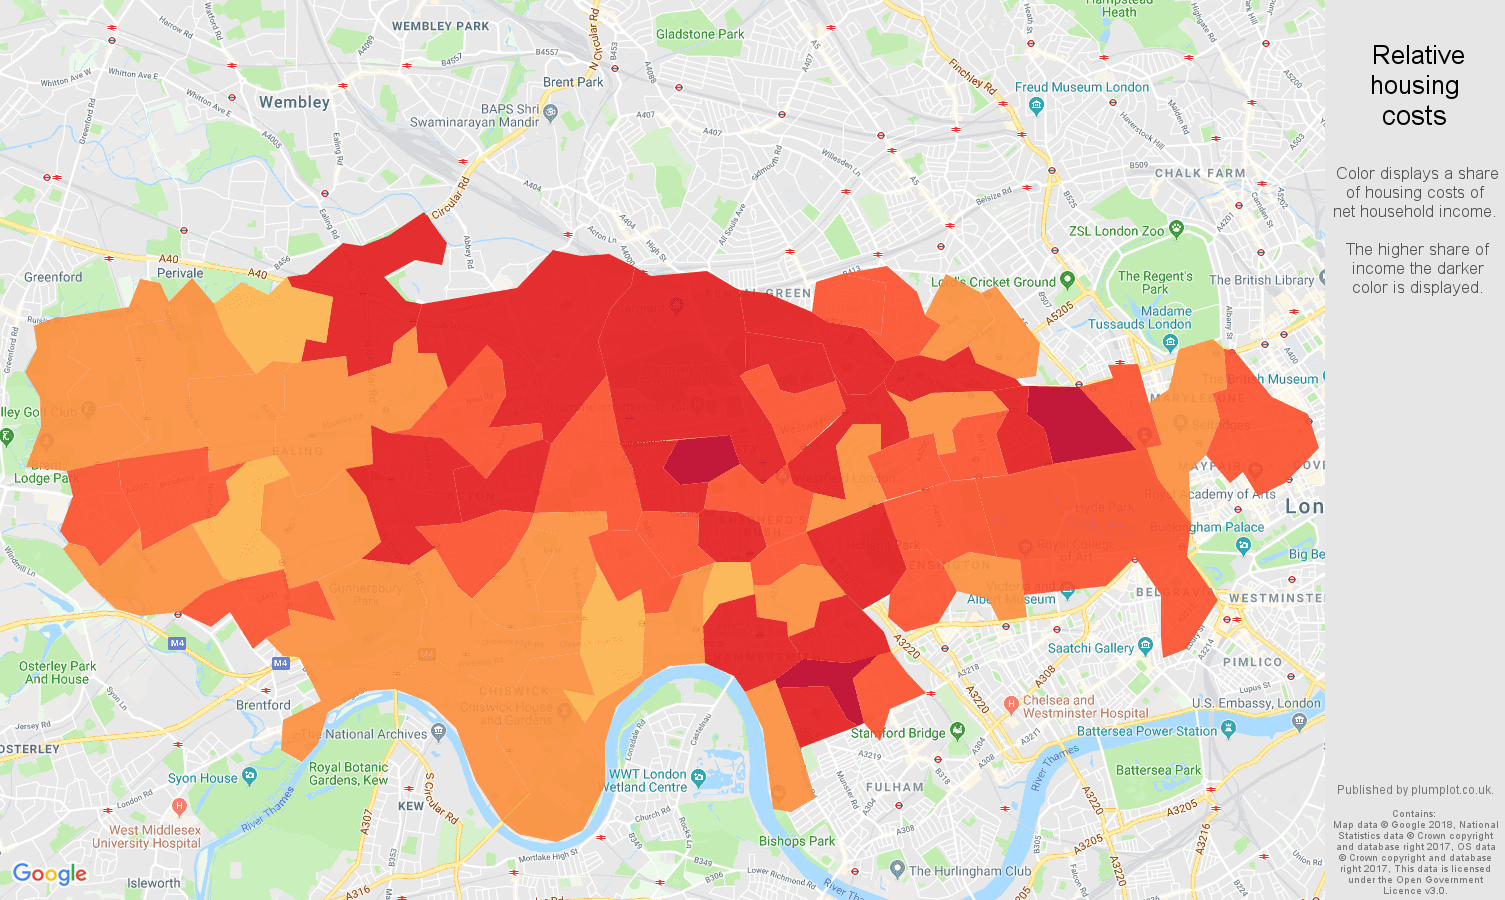 West London relative housing costs map